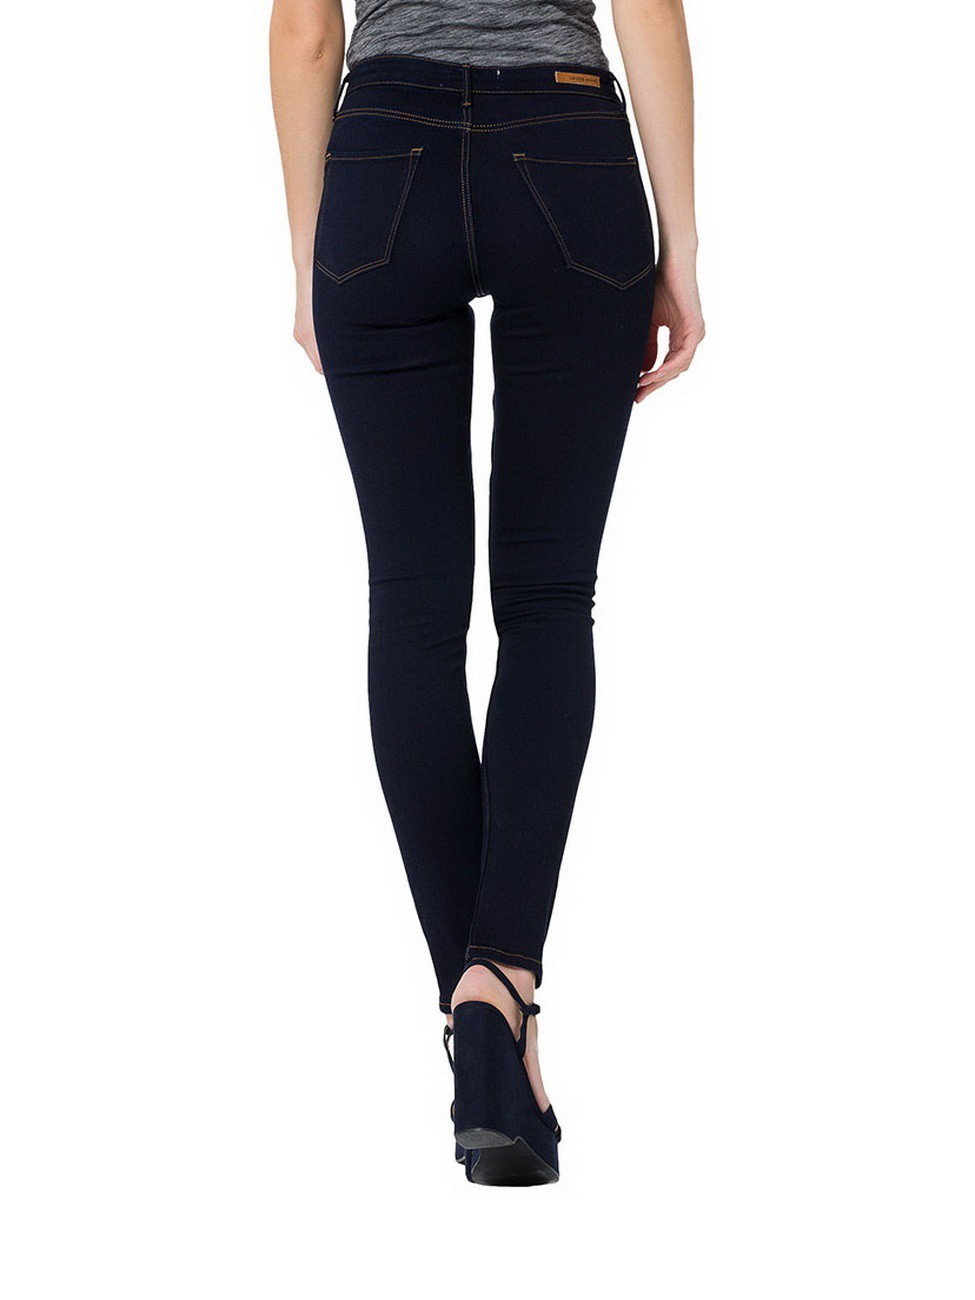 Cross Damen Jeans Natalia Slim Fit - Blau - Rinsed